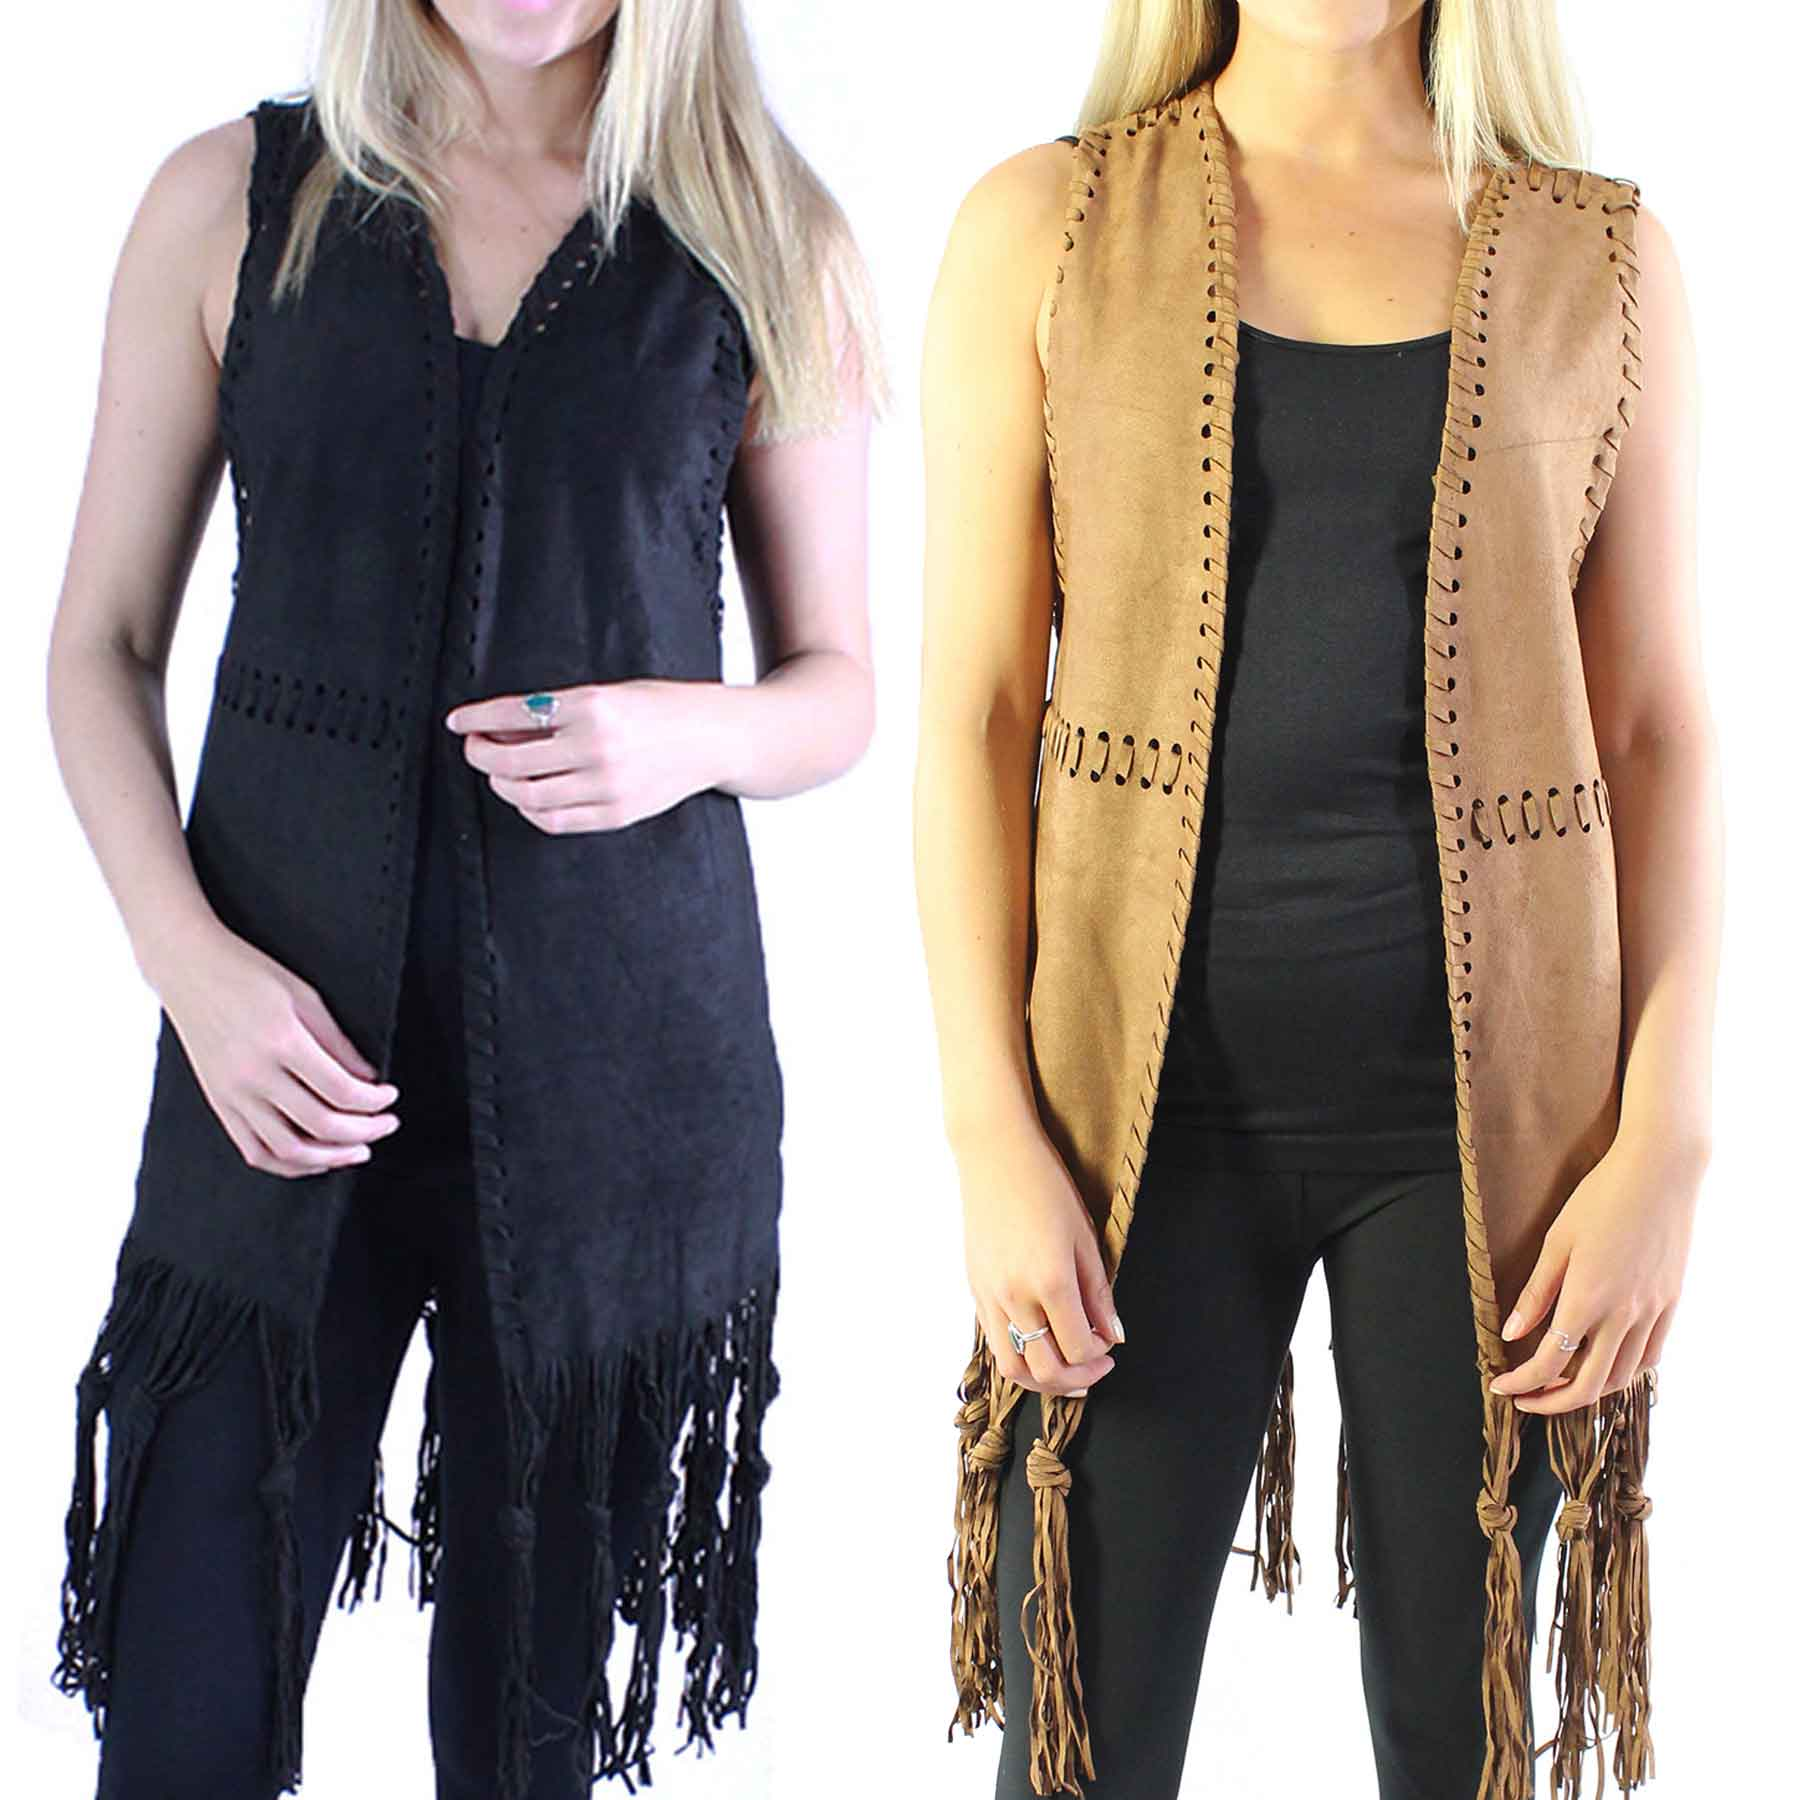 Vests - Faux Suede Tasseled 8642